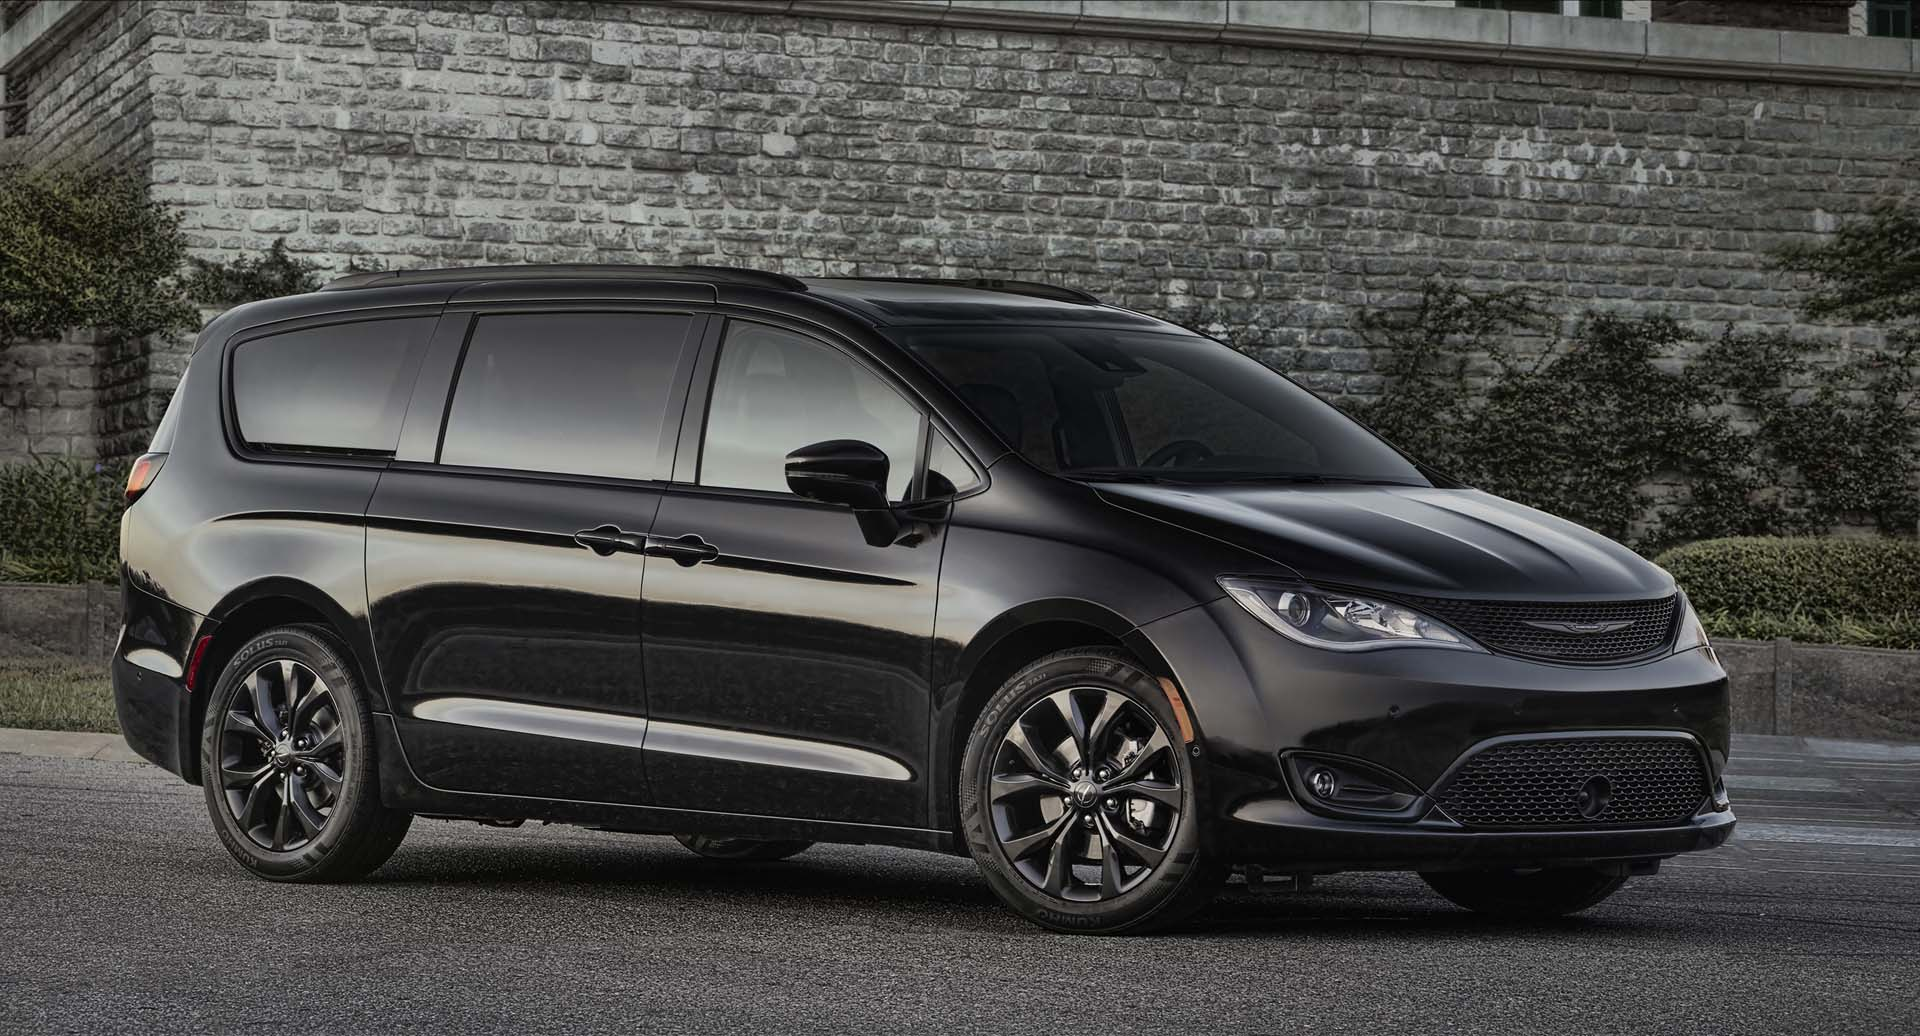 2019 Chrysler Pacifica Review, Ratings, Specs, Prices, and Photos | Jungle Fender Flares - Best ...